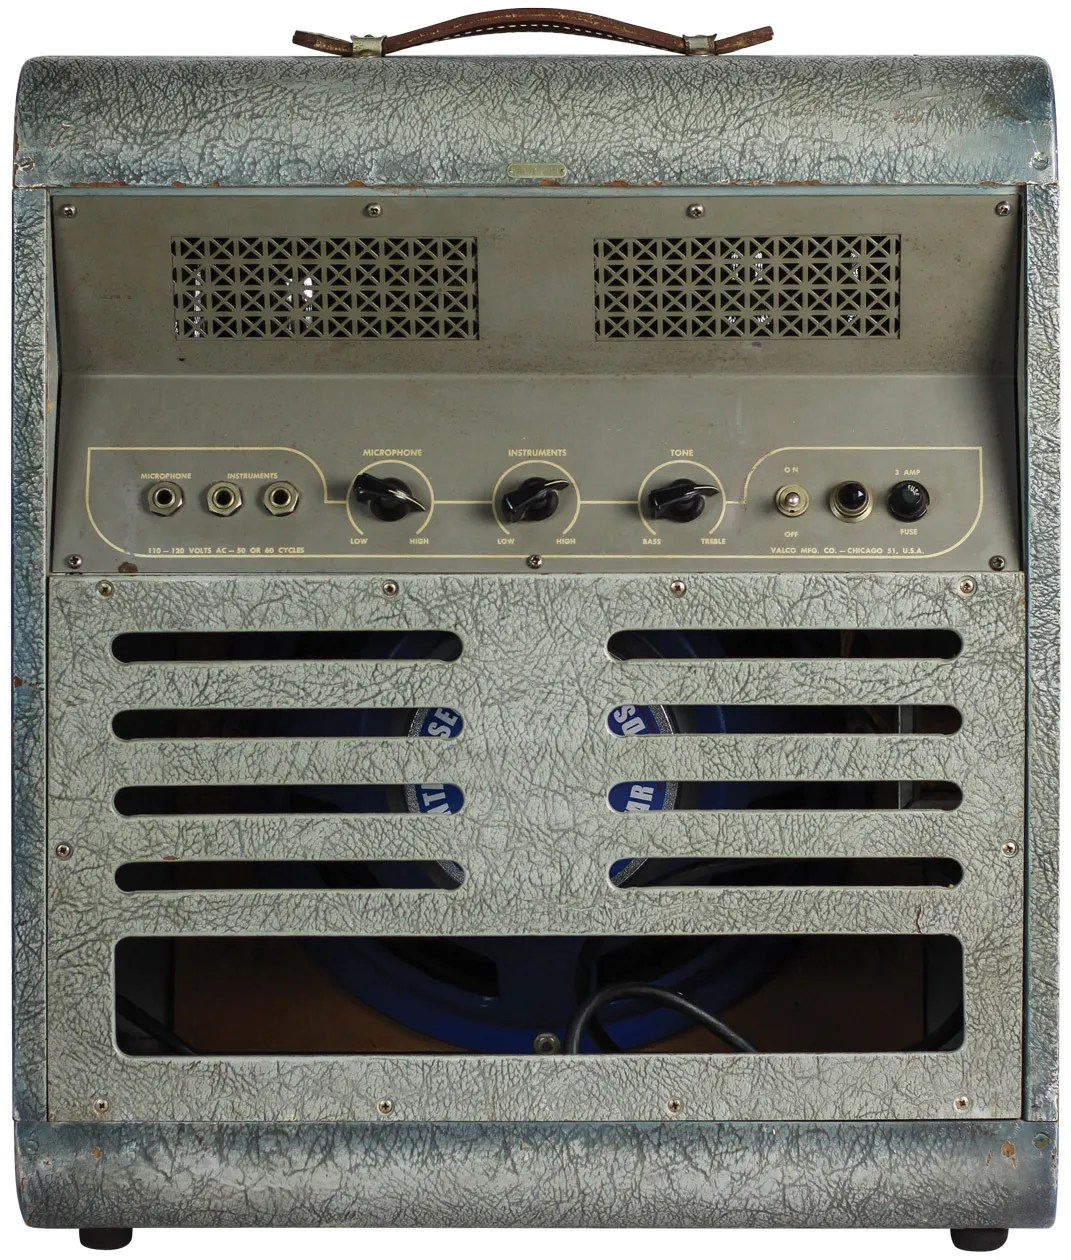 hight resolution of this same mckinney amp can also be found in the 1949 national catalog as model 1260 it cost 165 at the time and produces about 16 watts of power